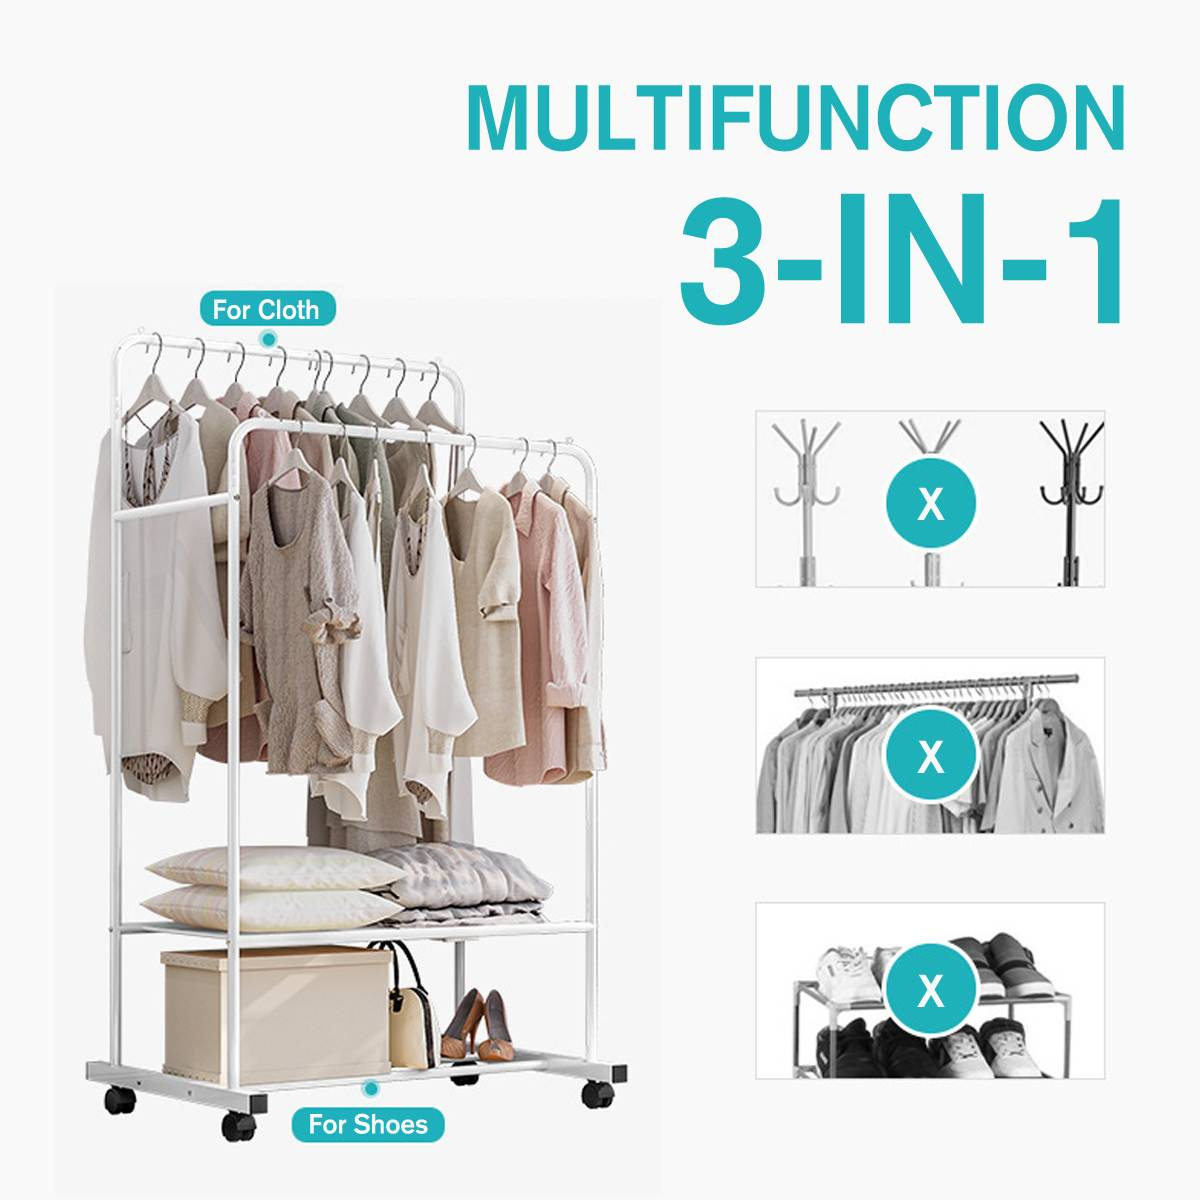 Multifunction Coat Rack Simple Metal Iron Floor Standing Clothes Hanging Storage Shelf Clothes Hanger Racks Bedroom Furniture